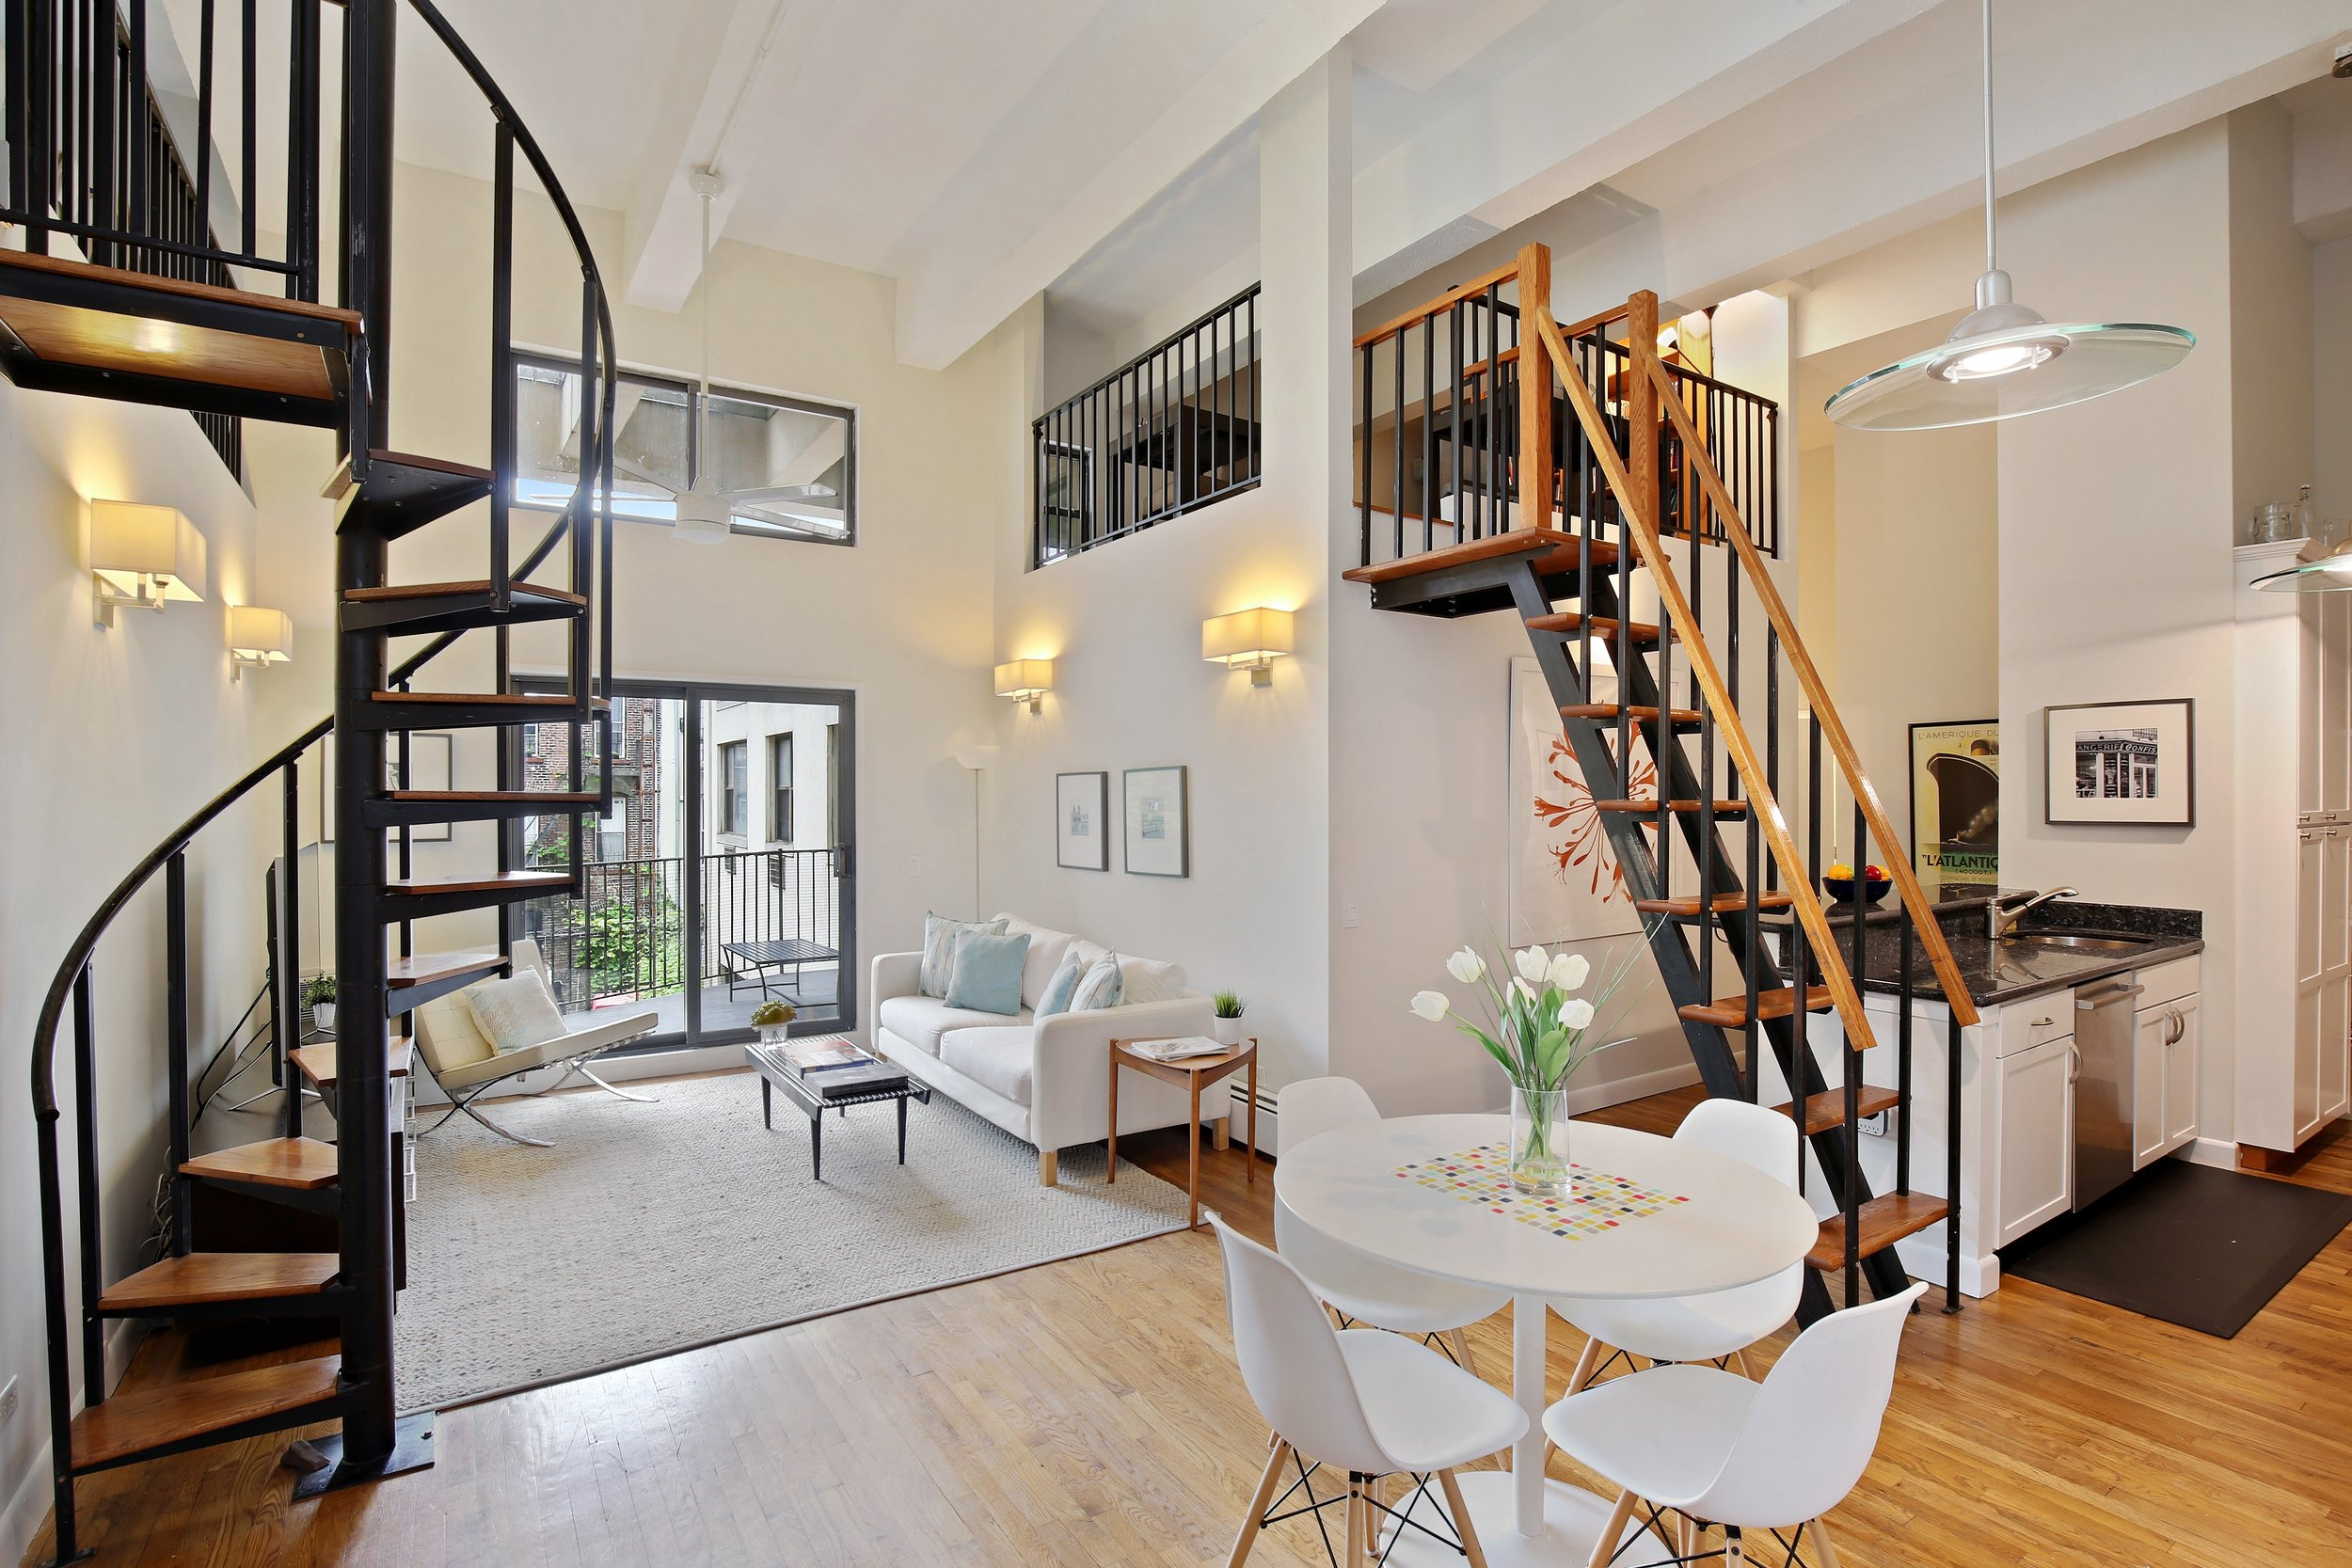 270 5th Street - Apt 2D, Park slope, bk